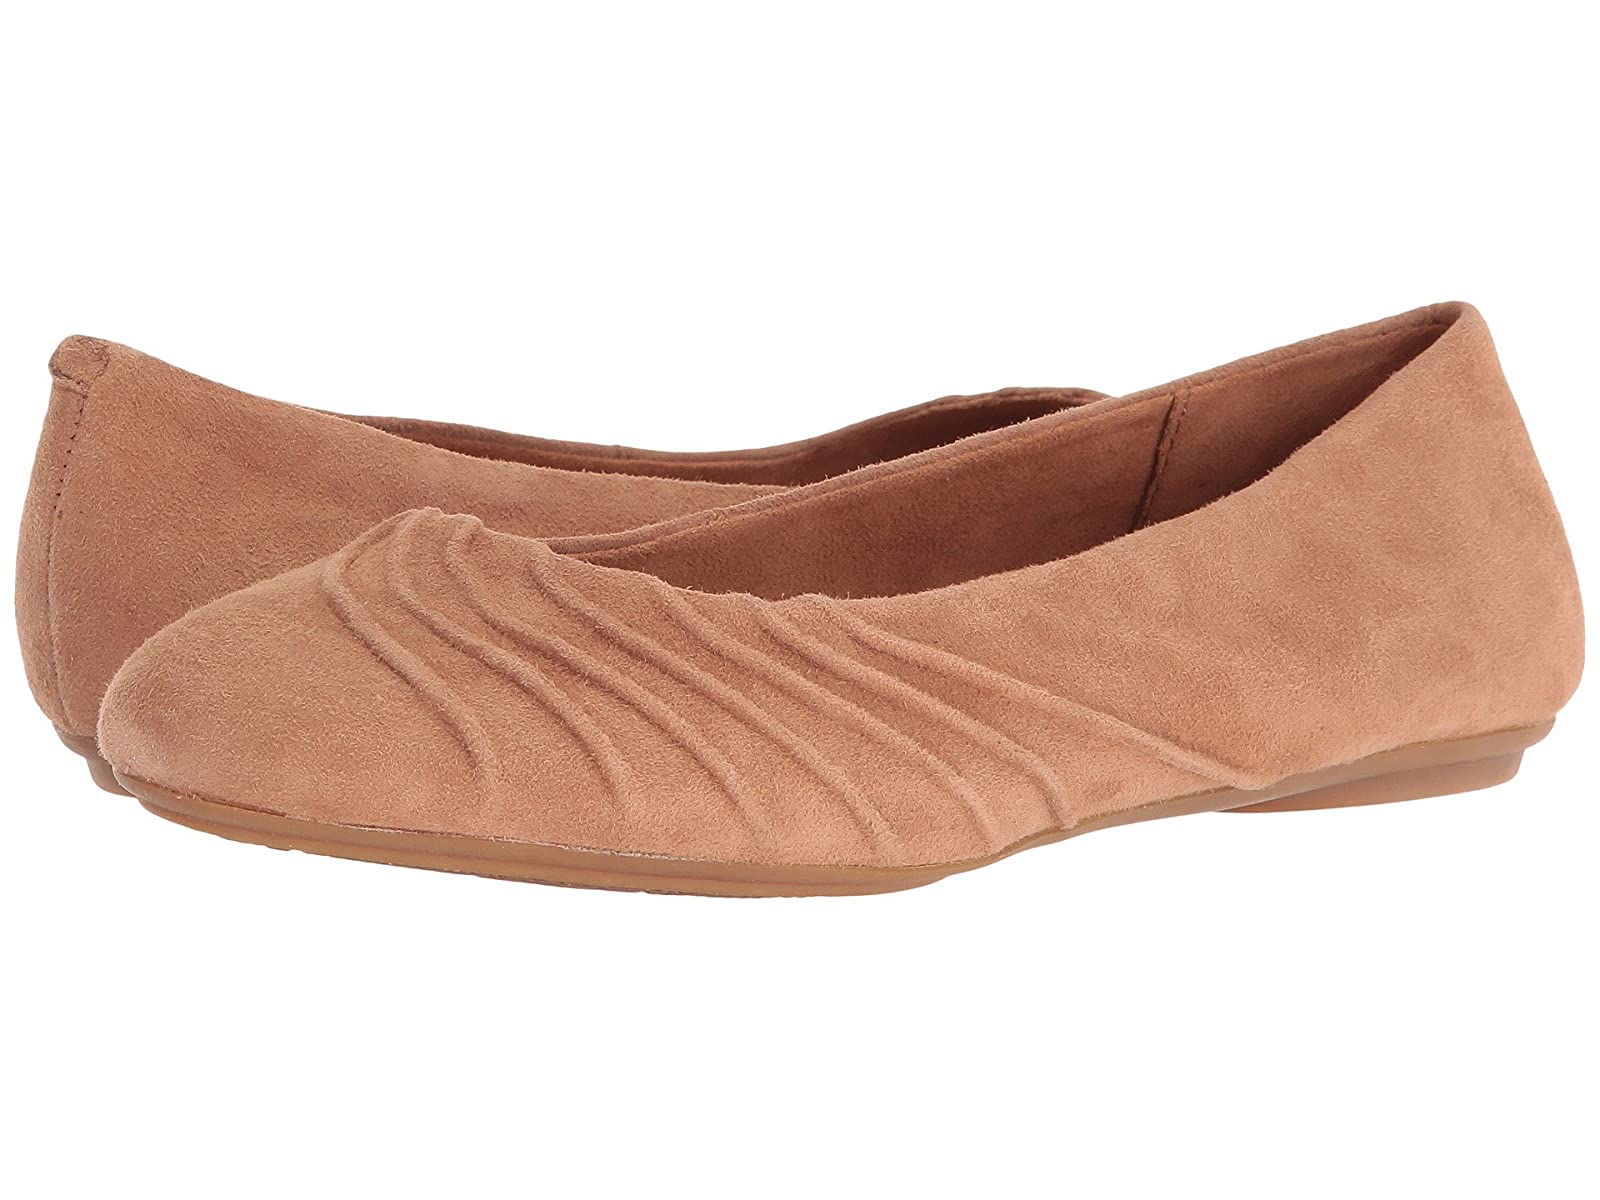 Hush Hush Hush Puppies Zella Chaste :Queensland:Man's/Woman's 16babc